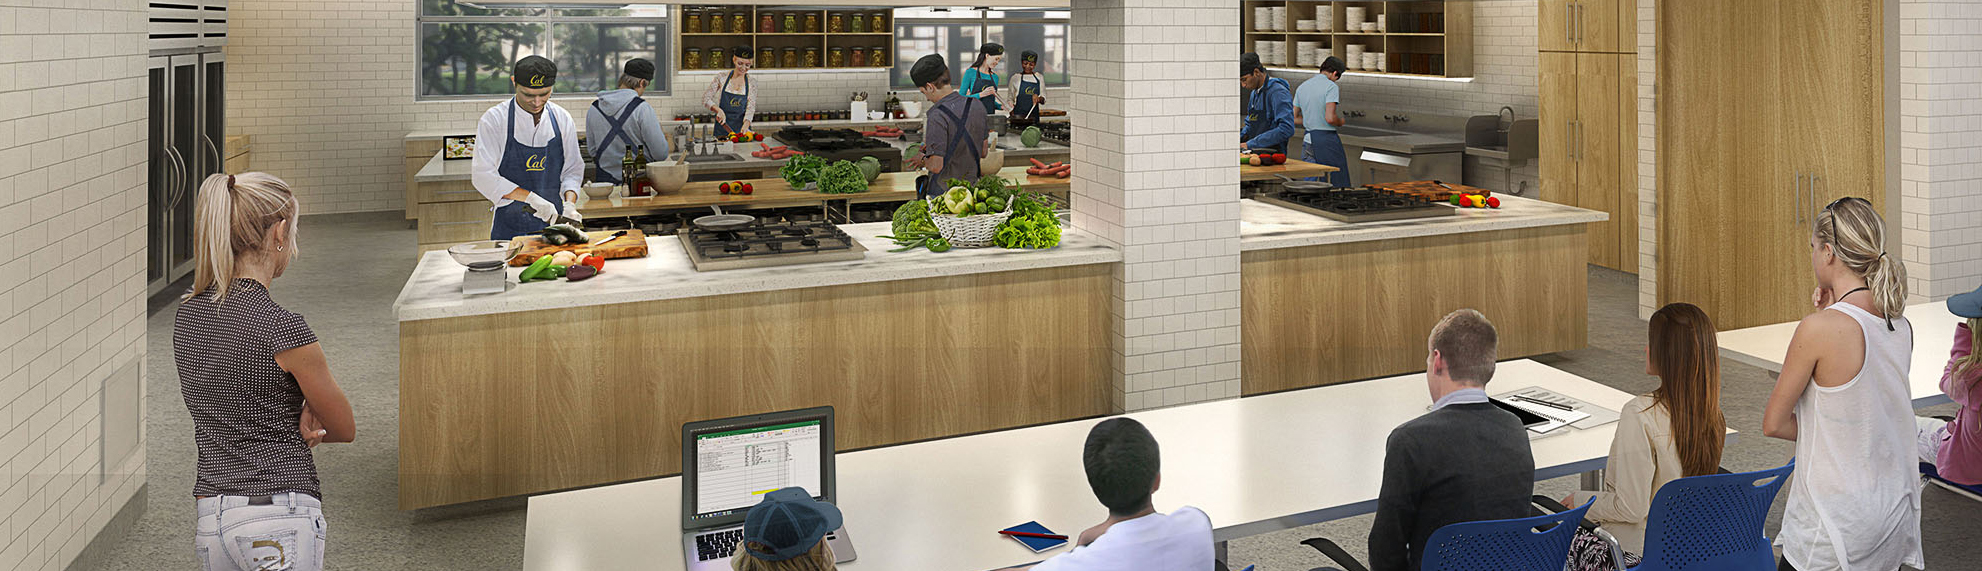 An architectural rendering of the Cal Teaching Kitchen